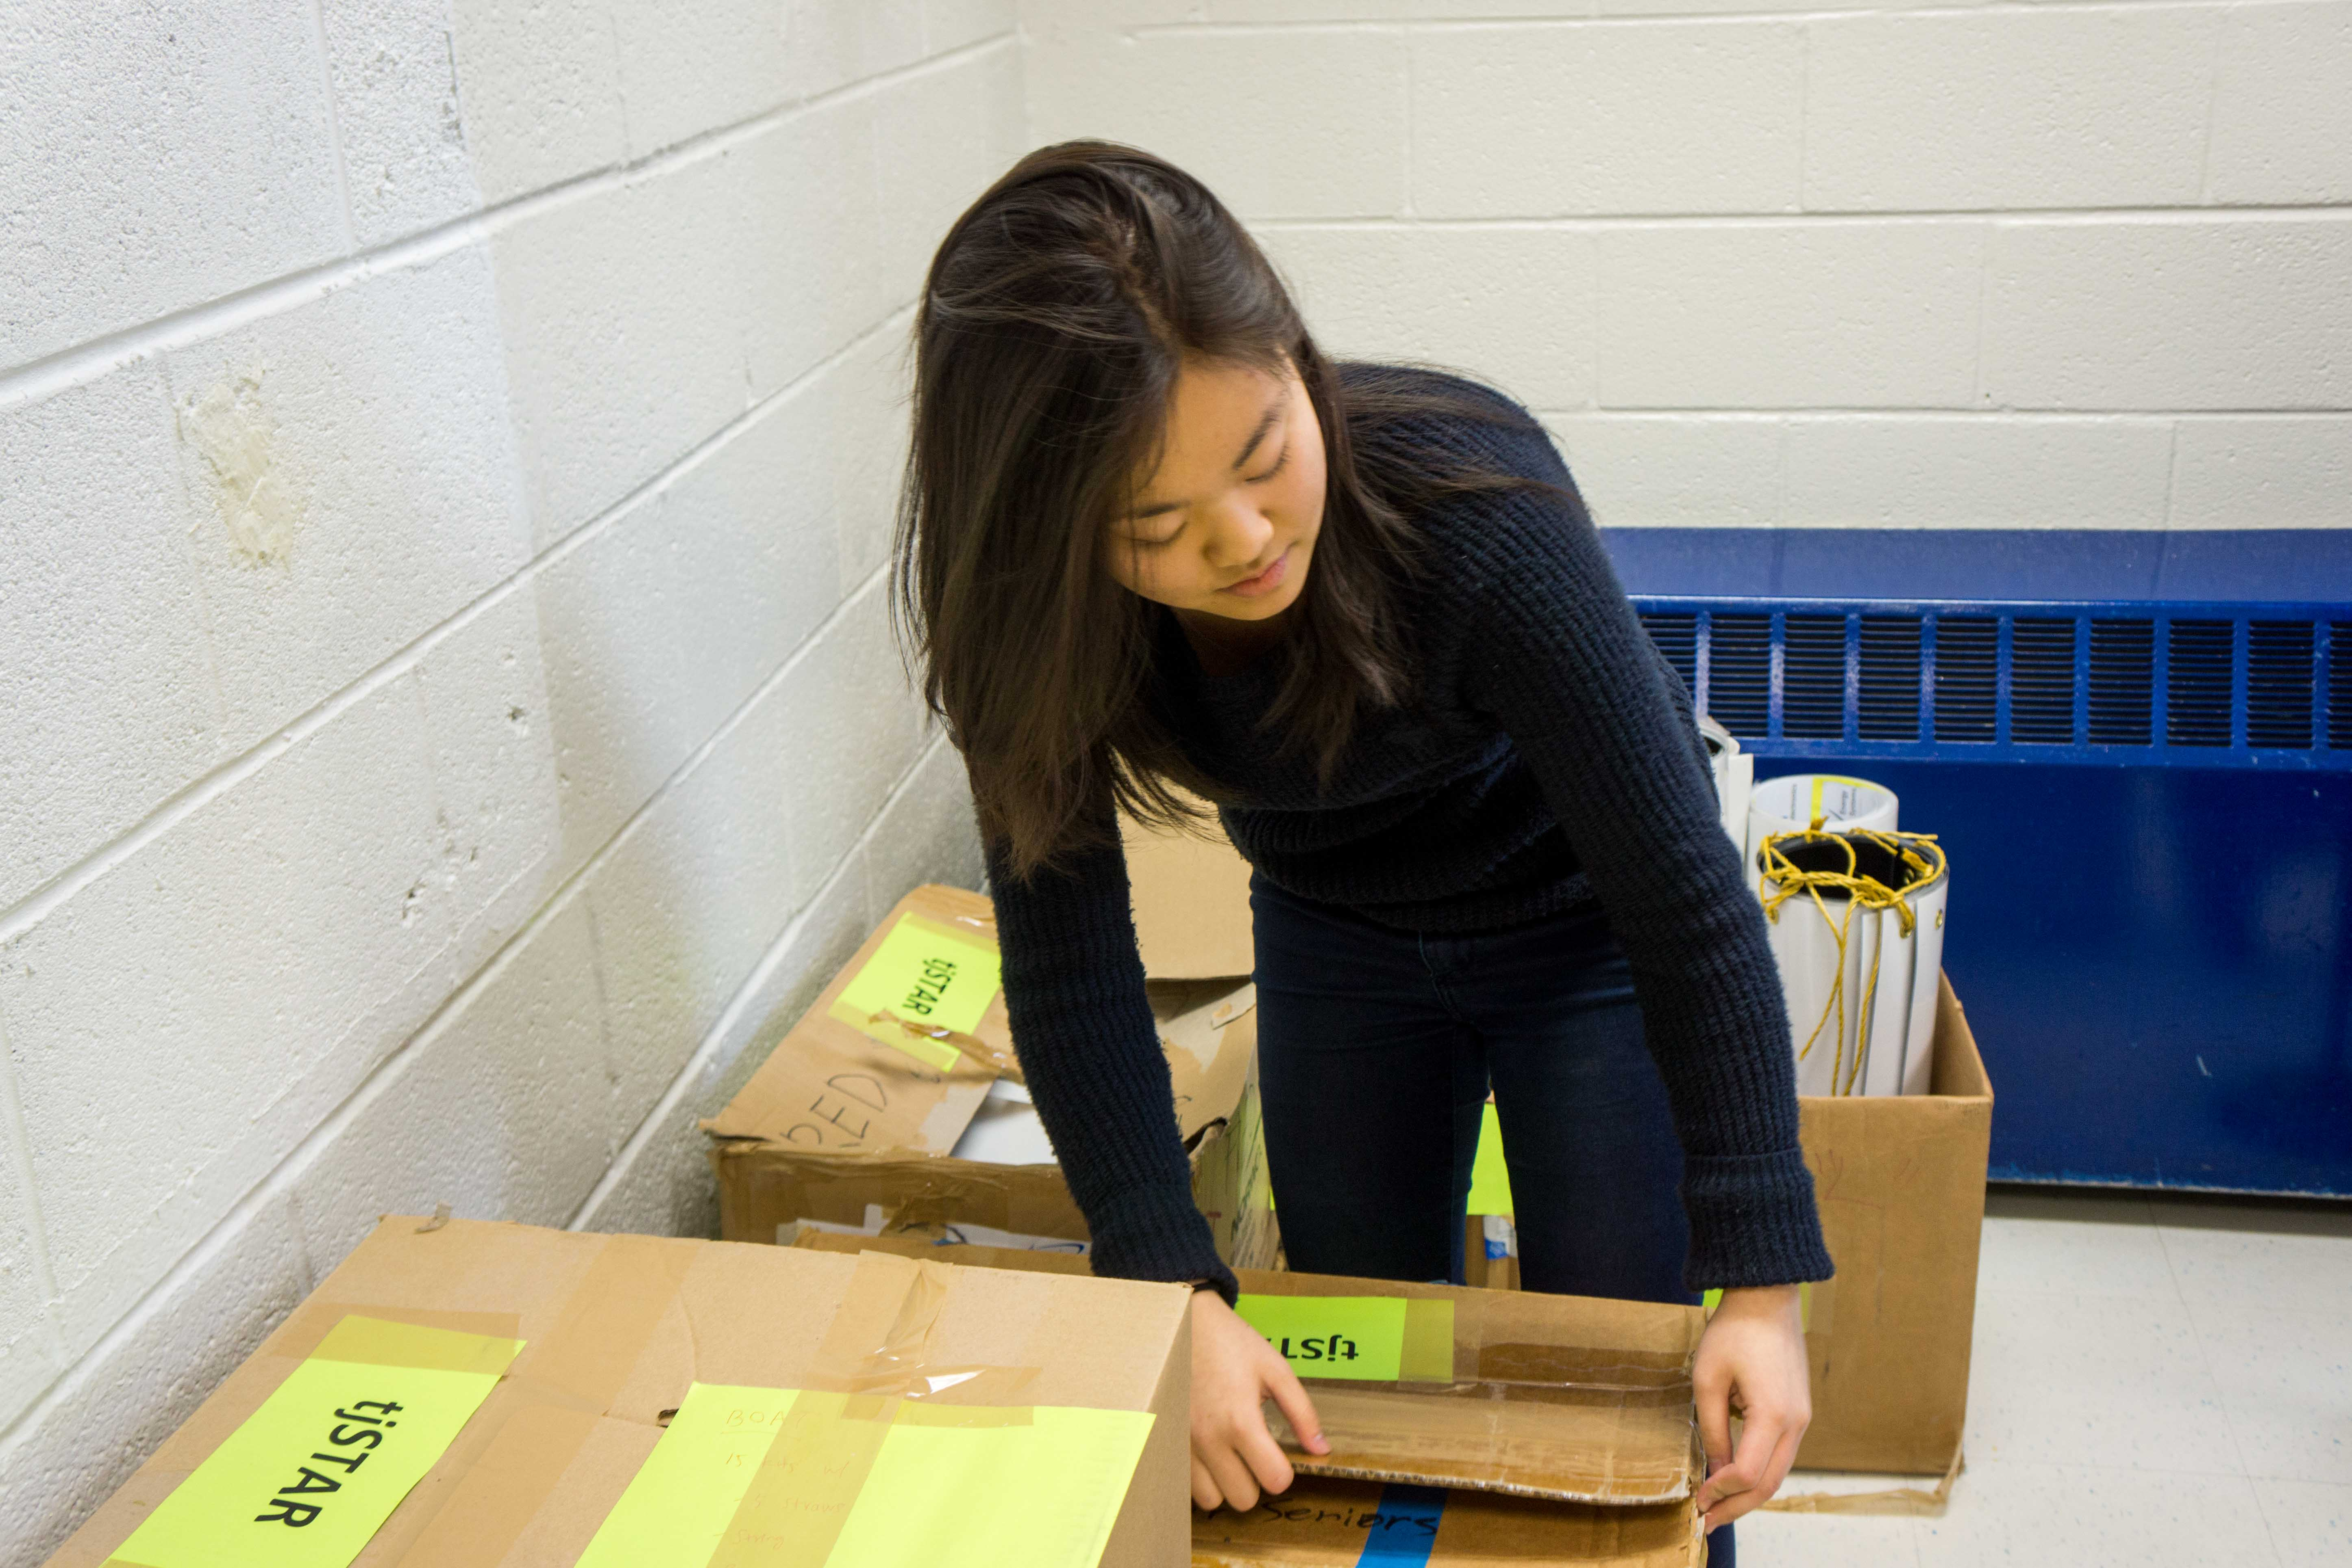 Senior Anna Tsutsui, co-chair of the tjSTAR Planning Committee, conducts an inventory of materials from previous years.